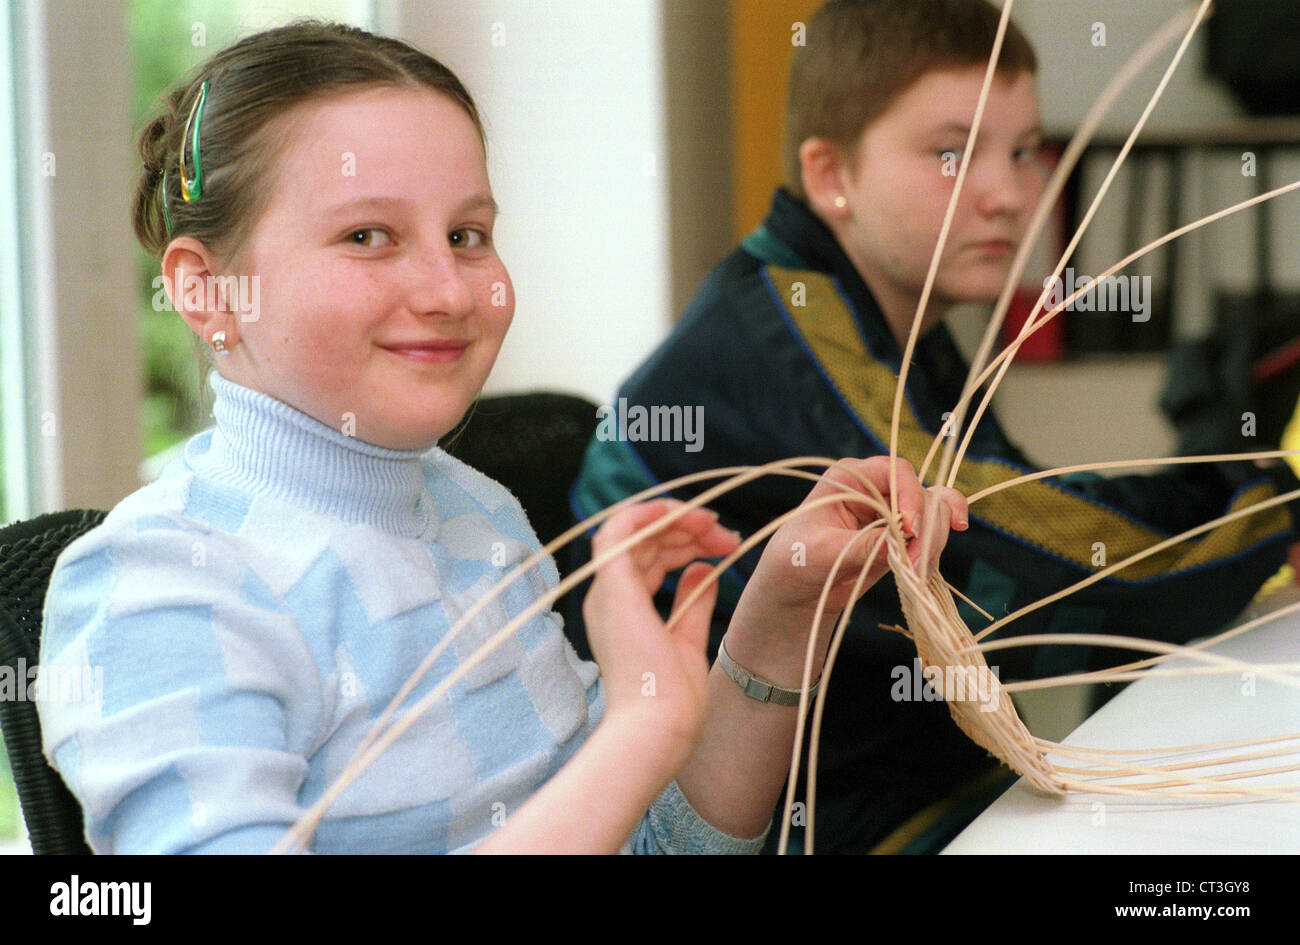 Bernau, rehabilitation of a sick child Chernobyl - Stock Image